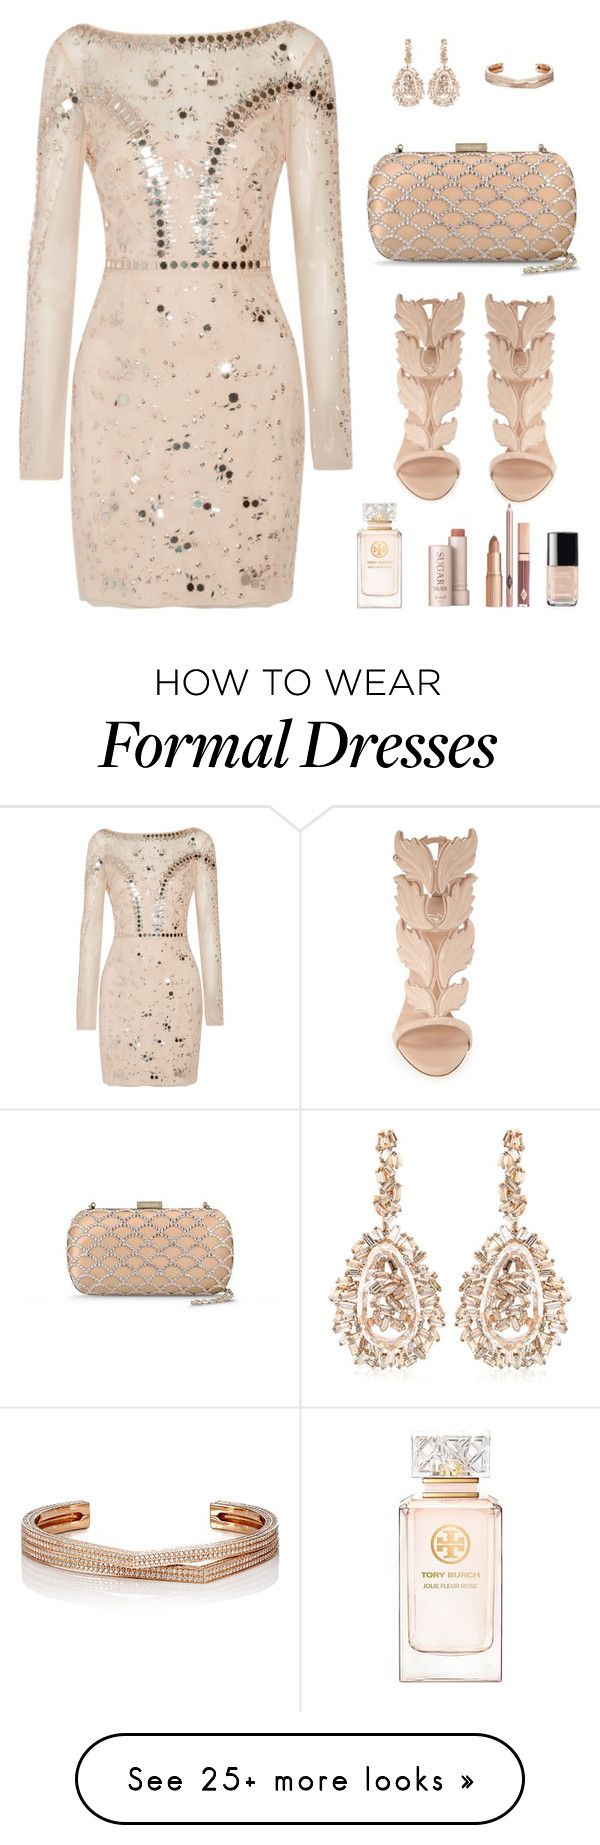 """formal event"" by allyxxoo on Polyvore featuring Giuseppe Zanotti, Temperley London, Chanel, Tory Burch, Fresh, Sergio Rossi, Suzanne Kalan, Repossi, women's clothing and women"